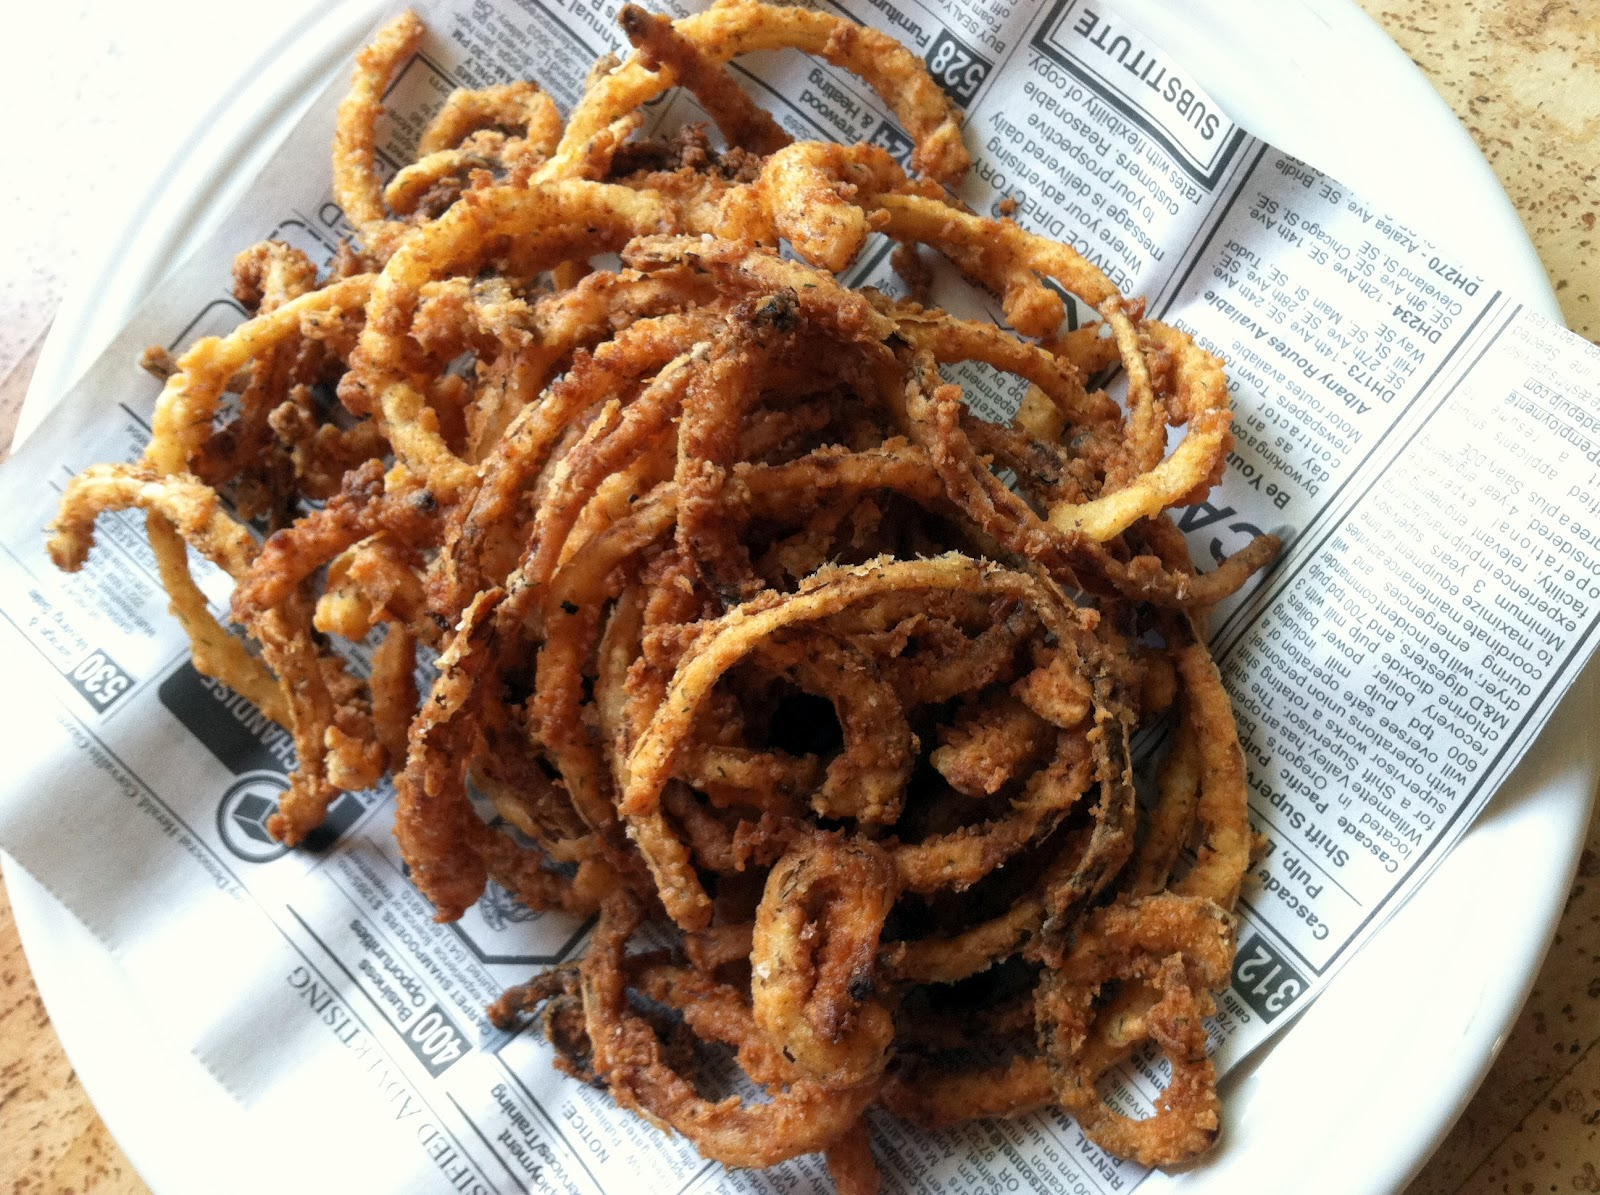 crispy onion rings 1 small onion cut into rings thickness